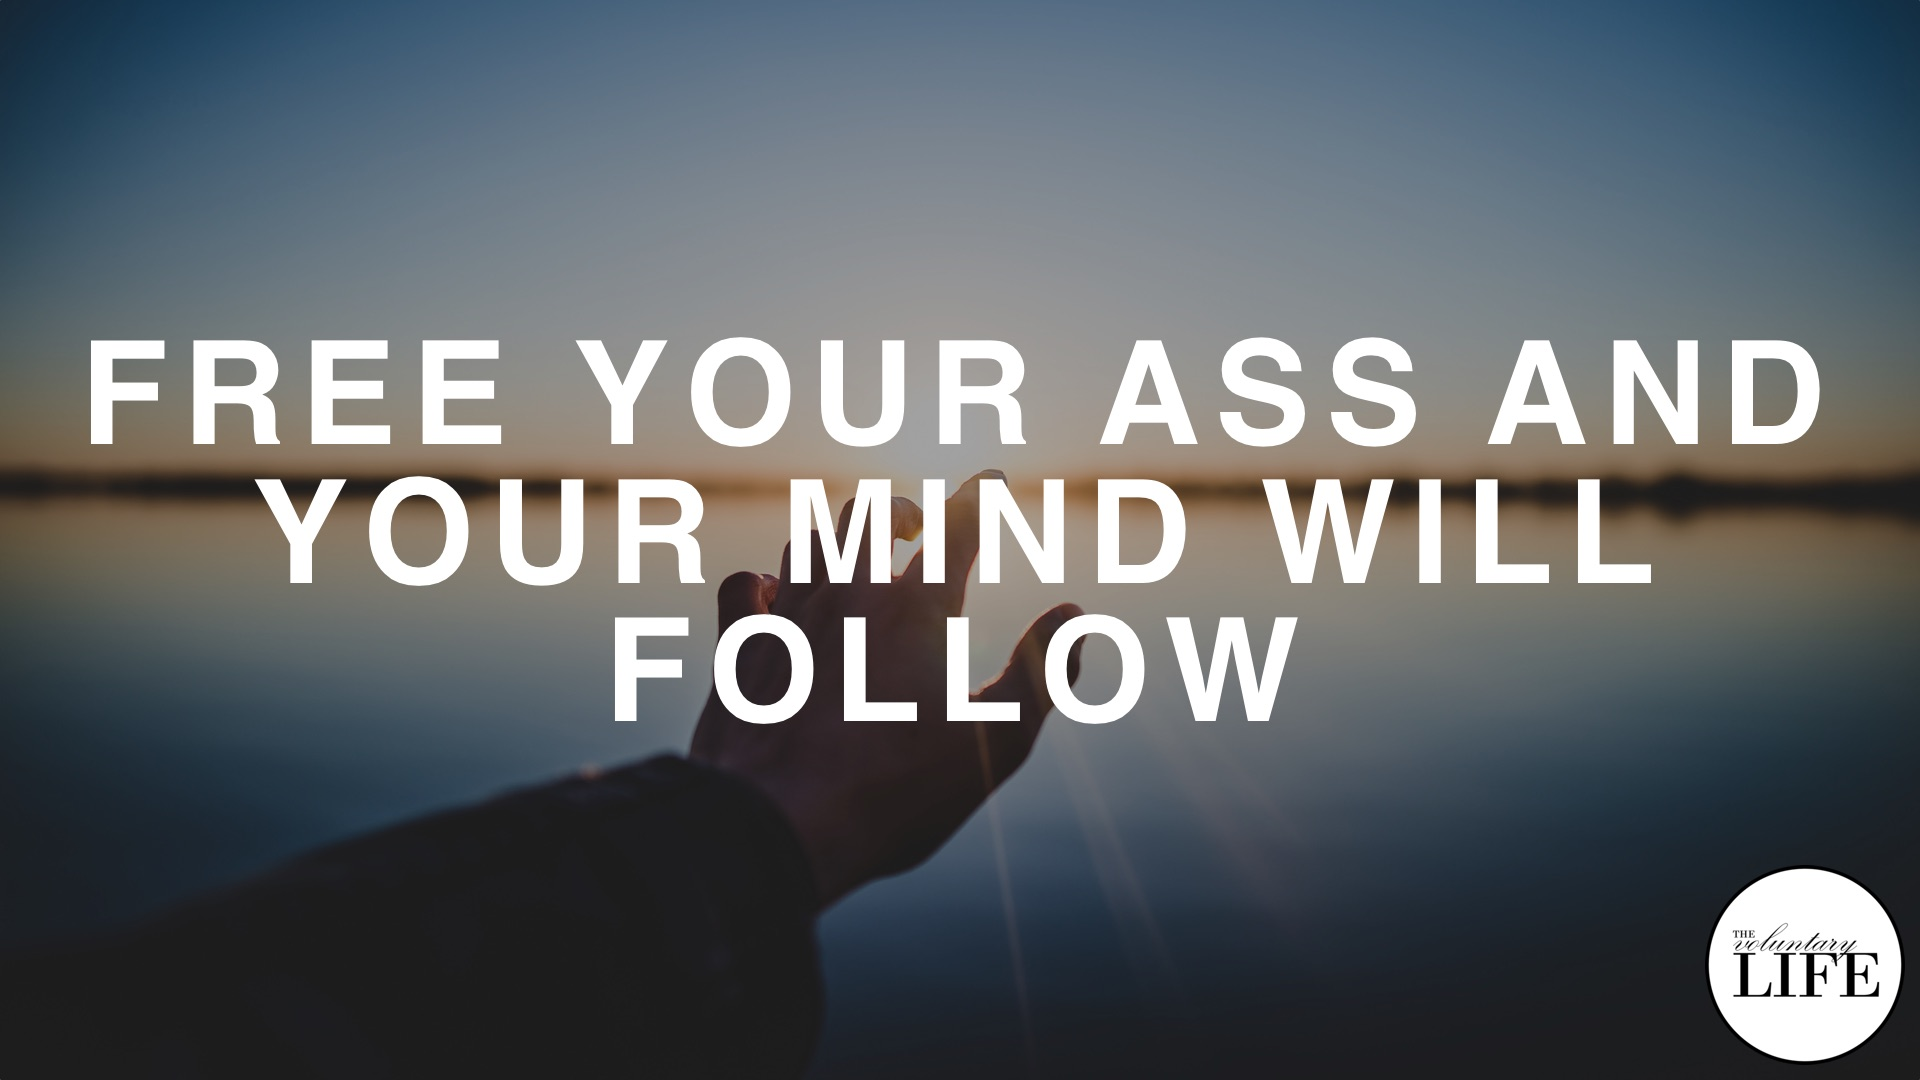 79 Entrepreneurship Part 11: Free Your Ass And Your Mind Will Follow